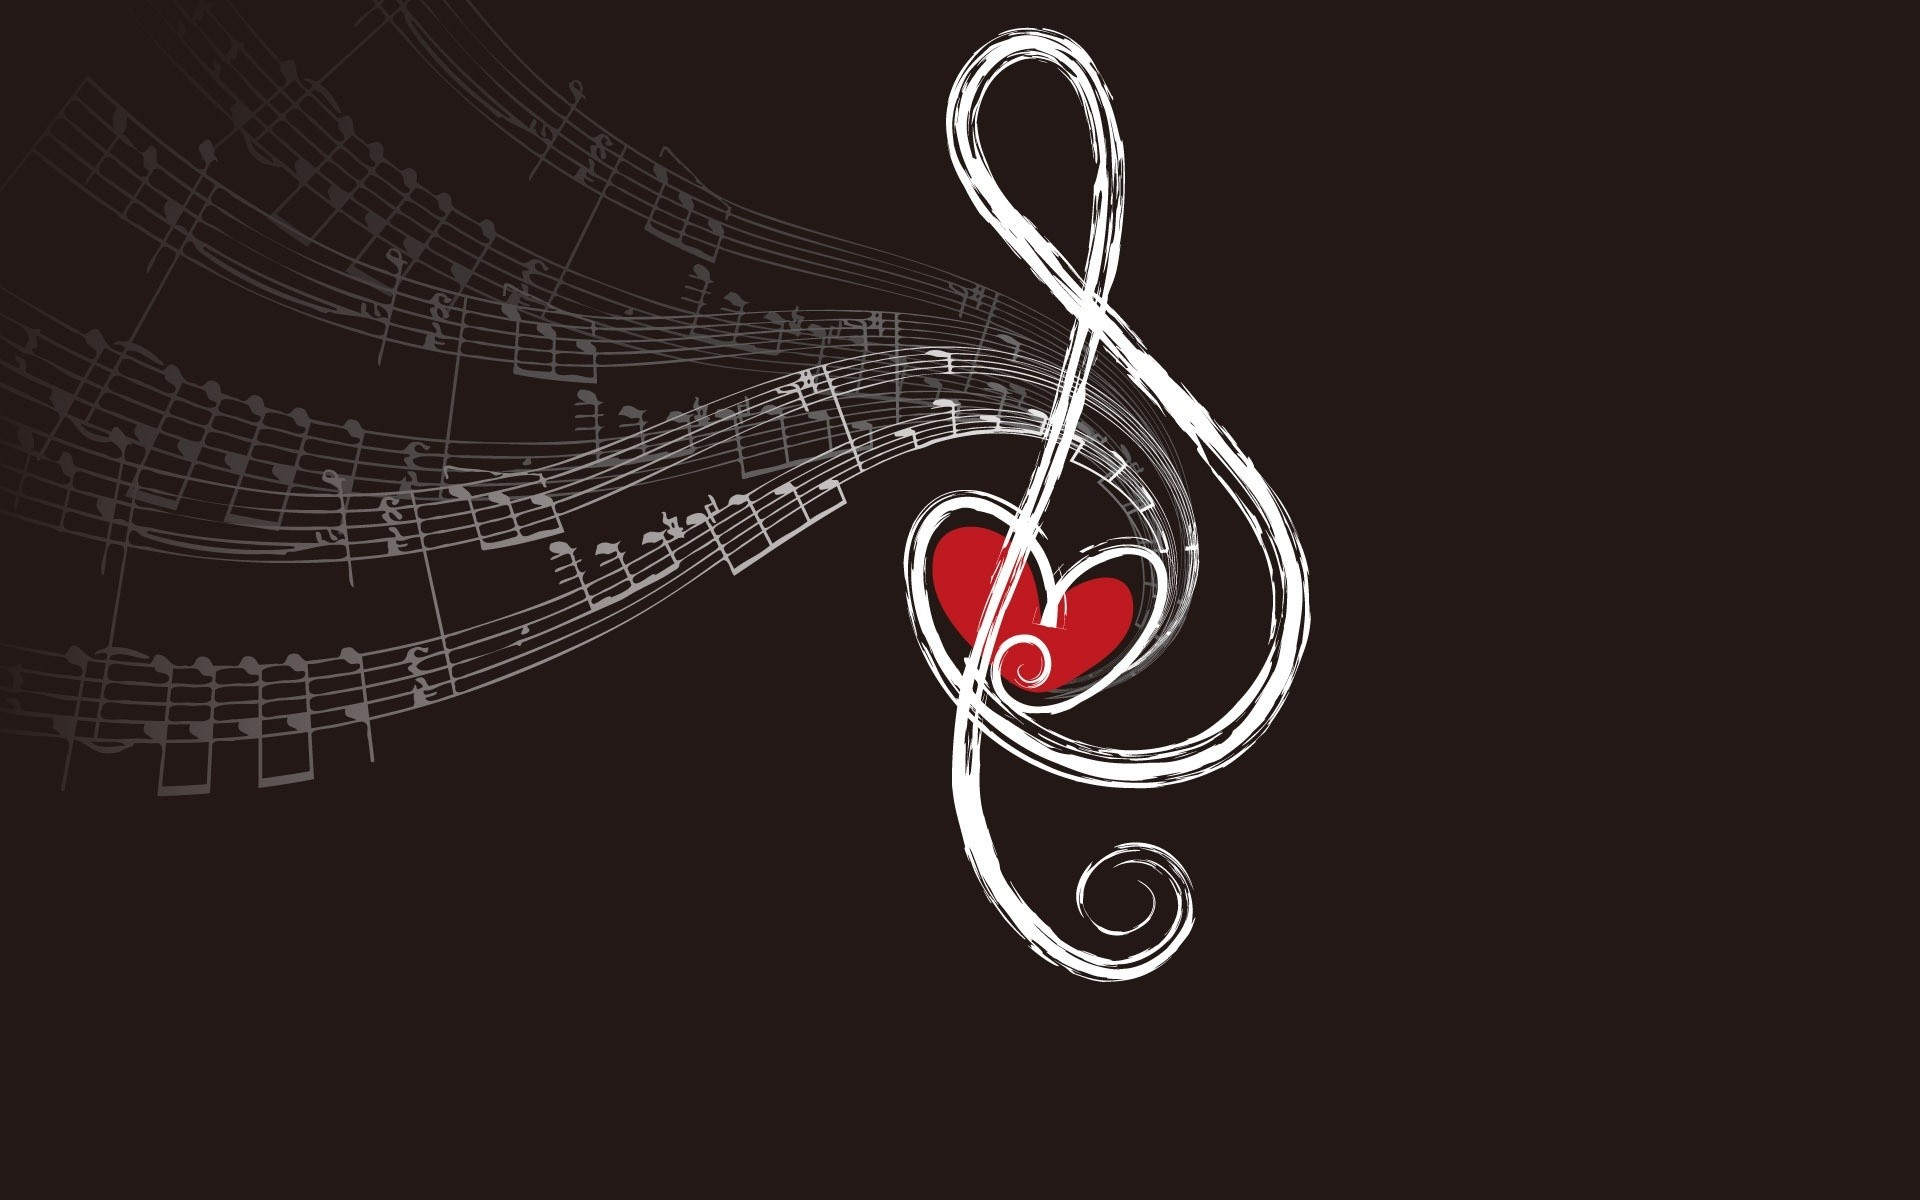 1920x1200 WE LOVE MUSIC HD desktop wallpaper : High Definition : Mobile ...